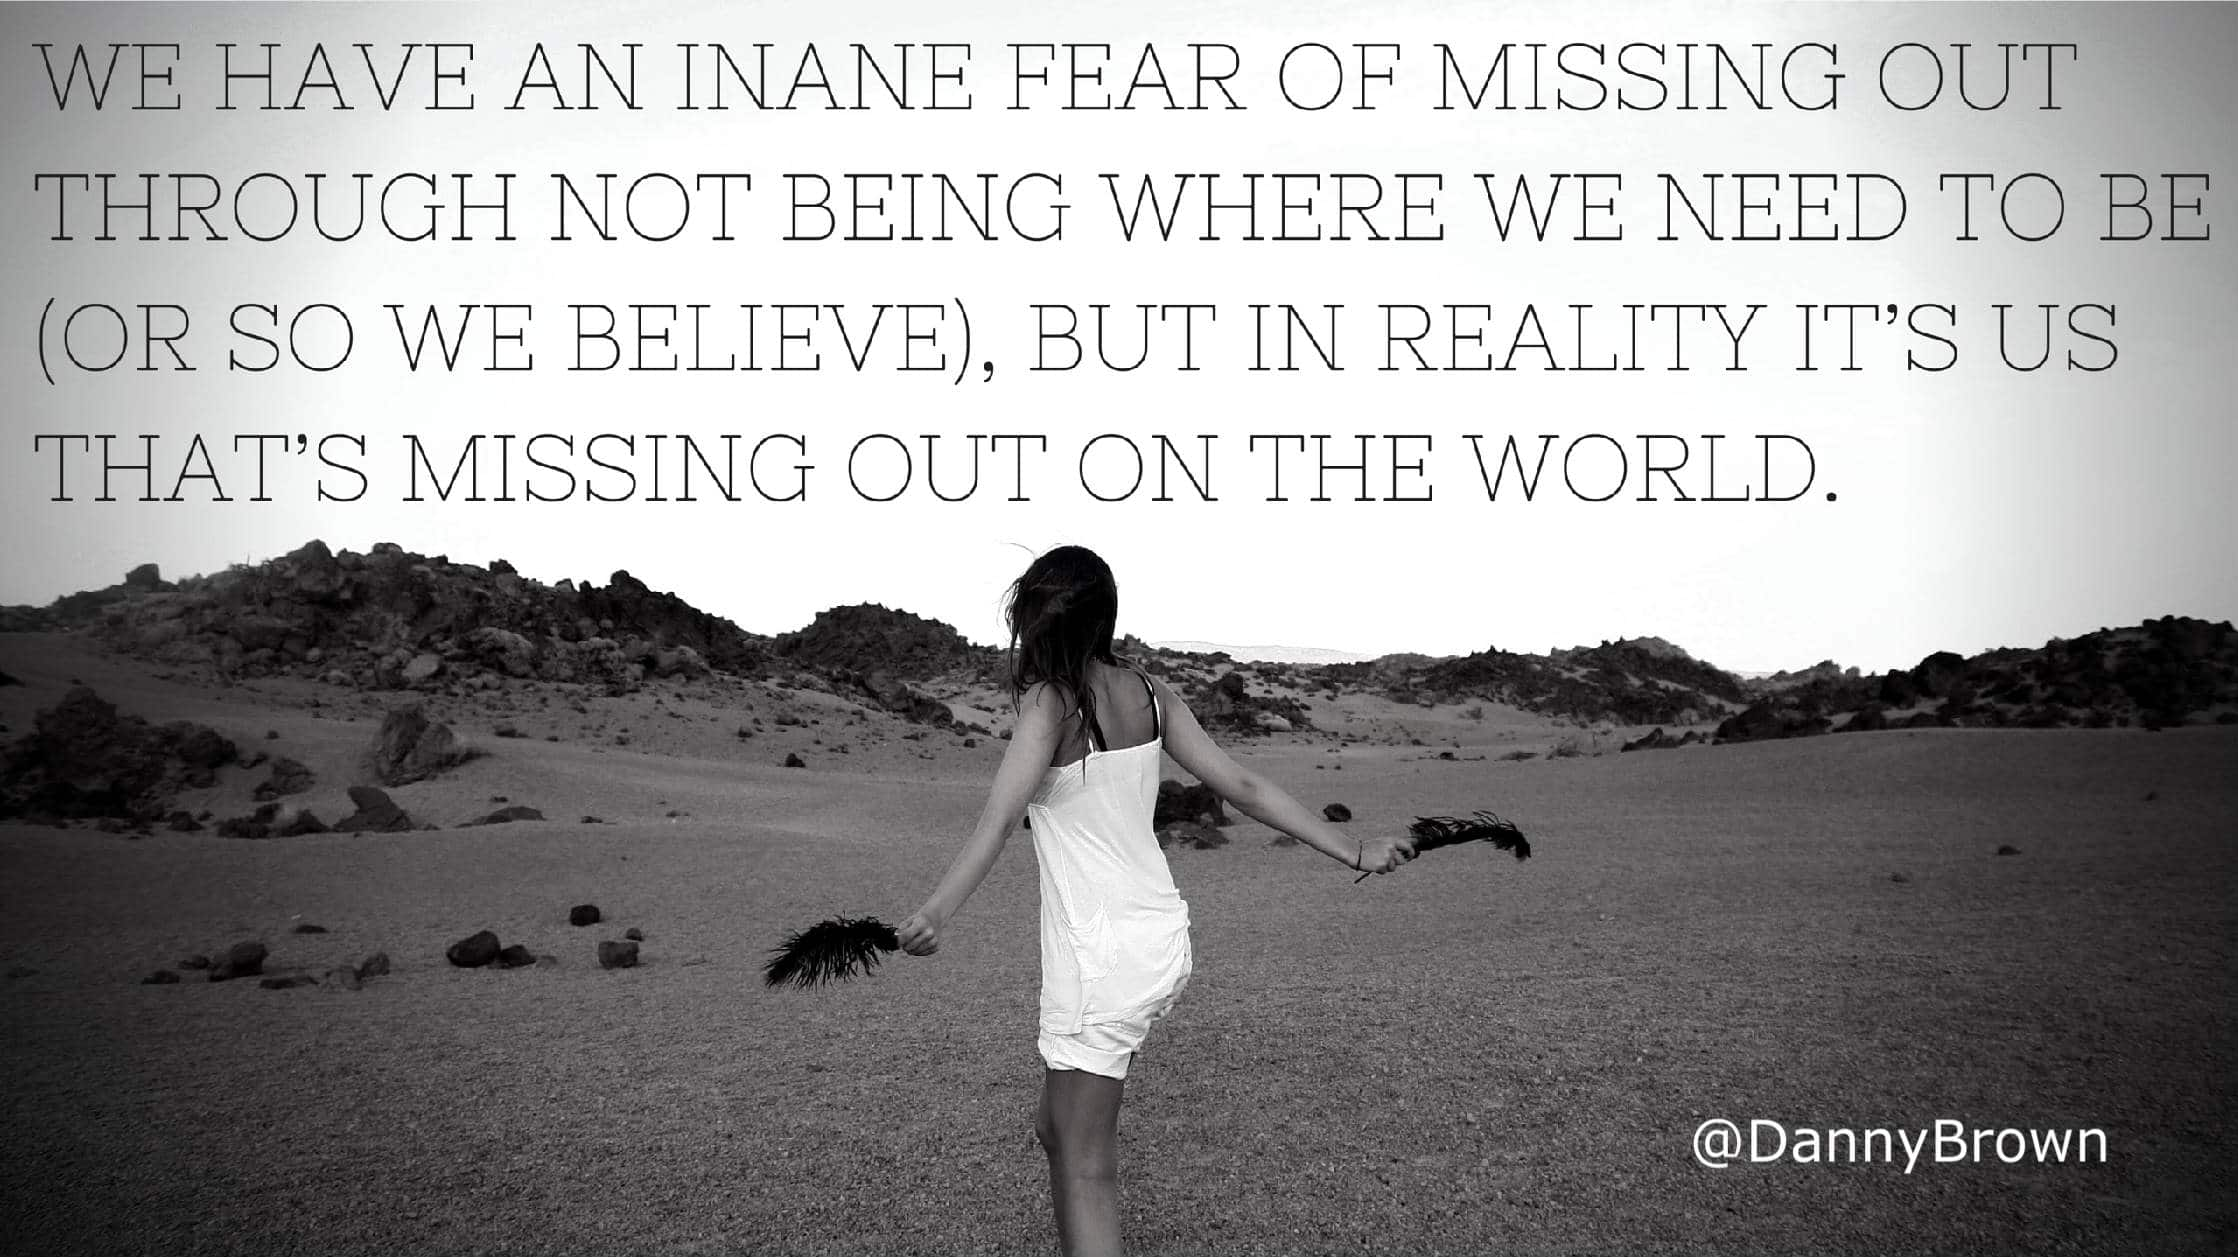 The world isn't missing out on us - we're missing out on the world. We need to make more of what we do an experience.